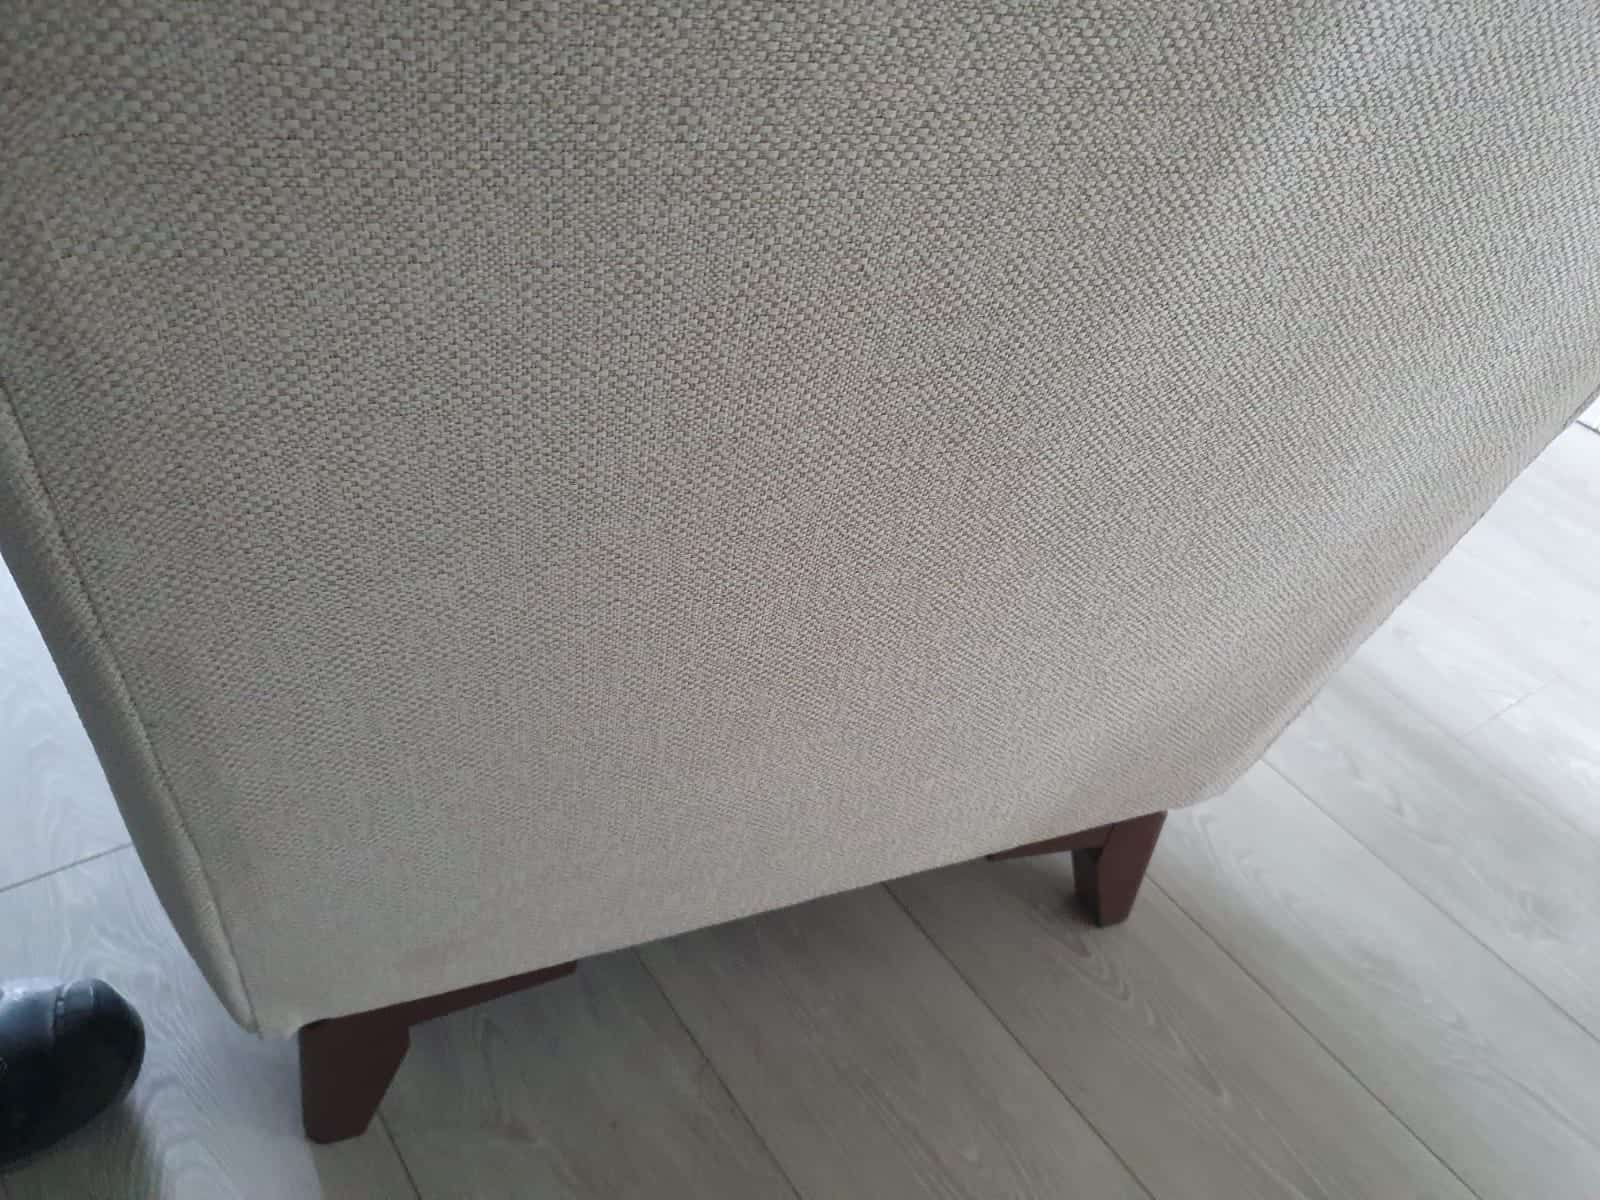 An after image of a sofa that has undergone upholstery cleaning